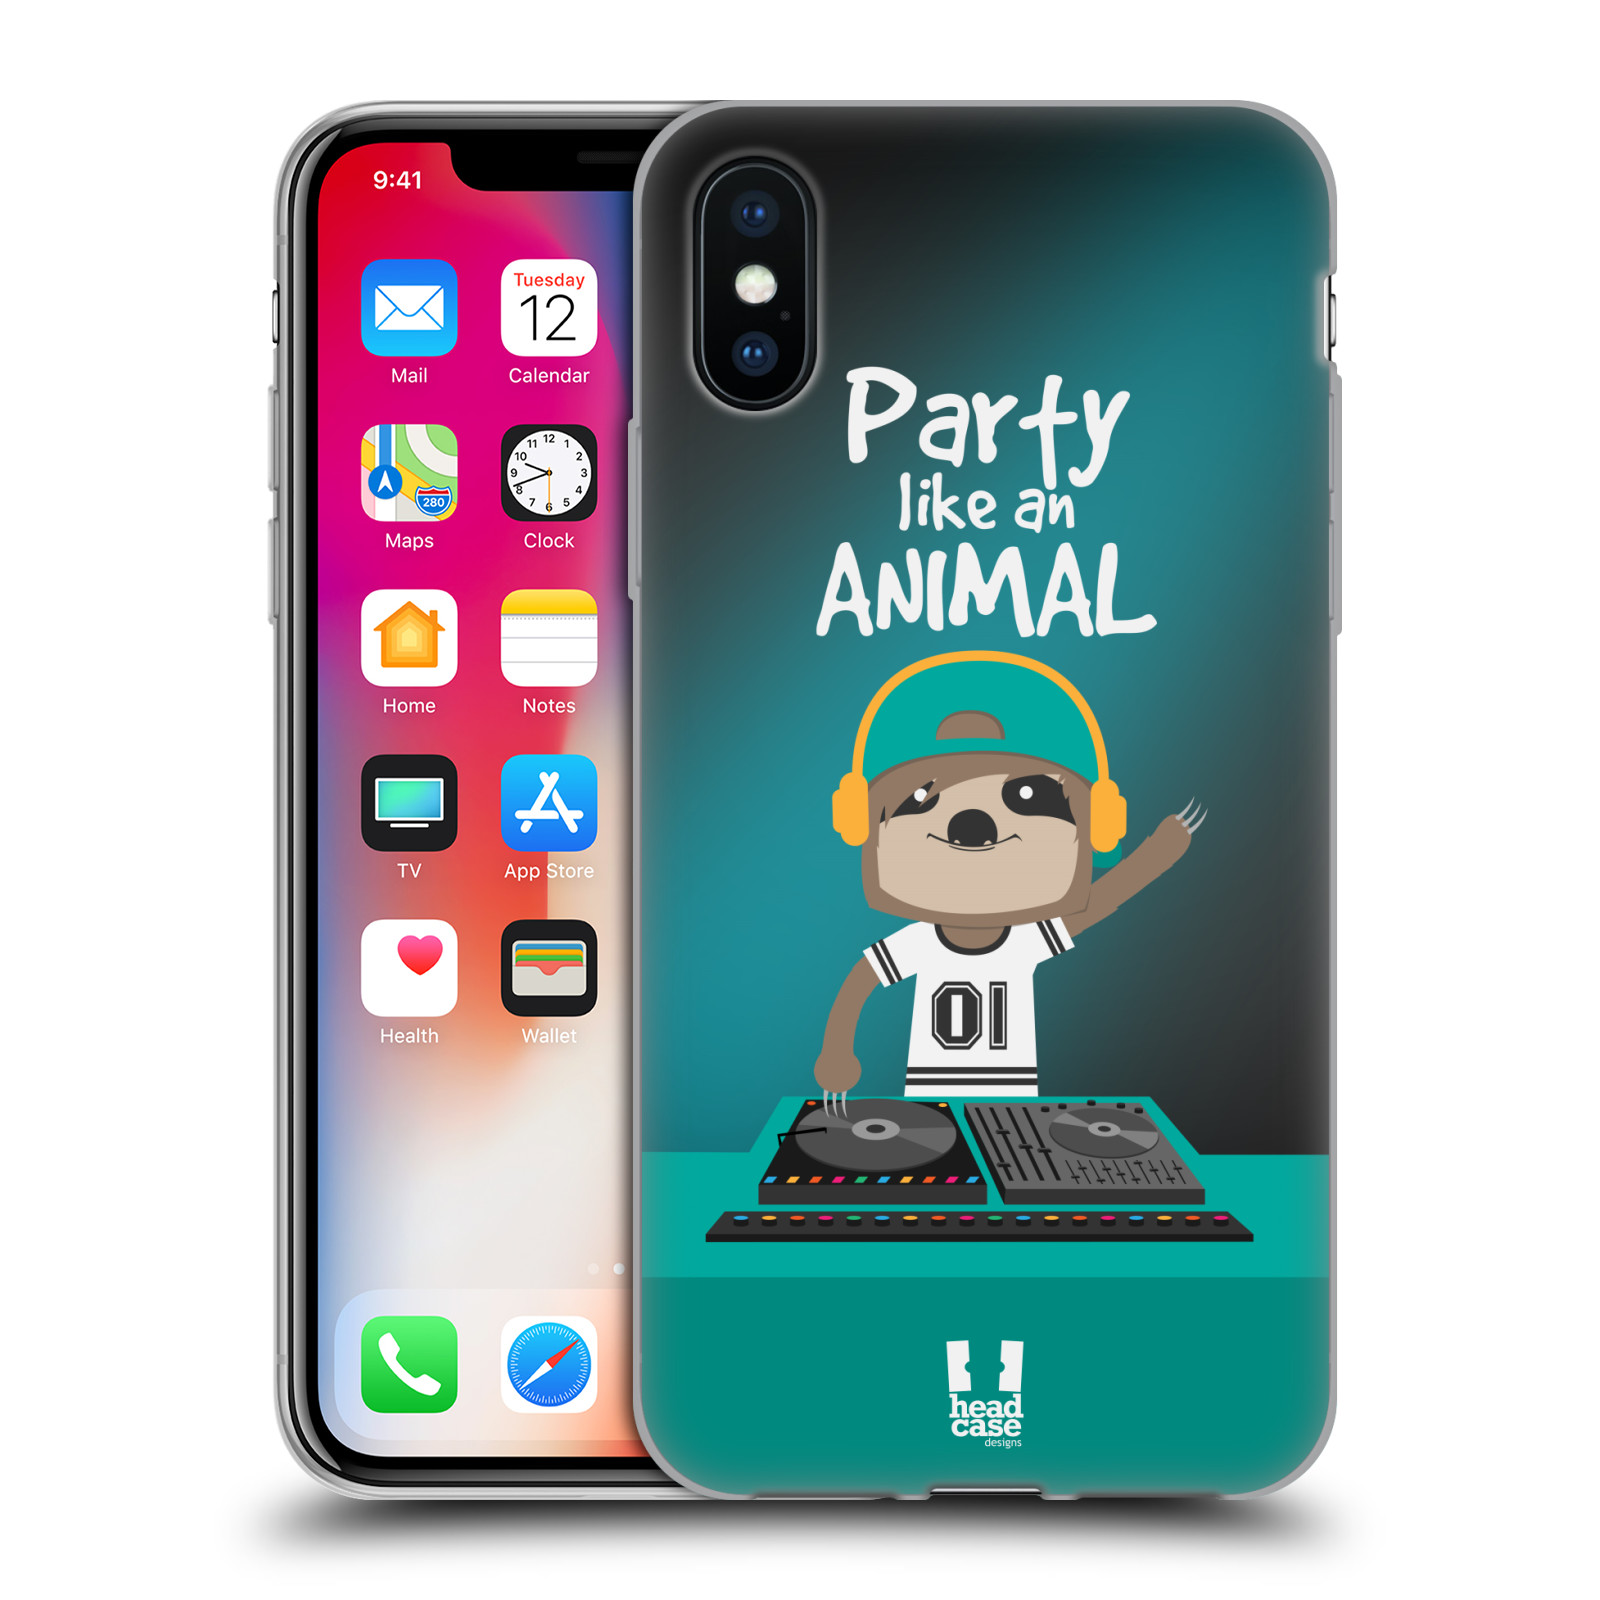 HEAD-CASE-DESIGNS-MR-SLOTH-SOFT-GEL-CASE-FOR-APPLE-iPHONE-PHONES